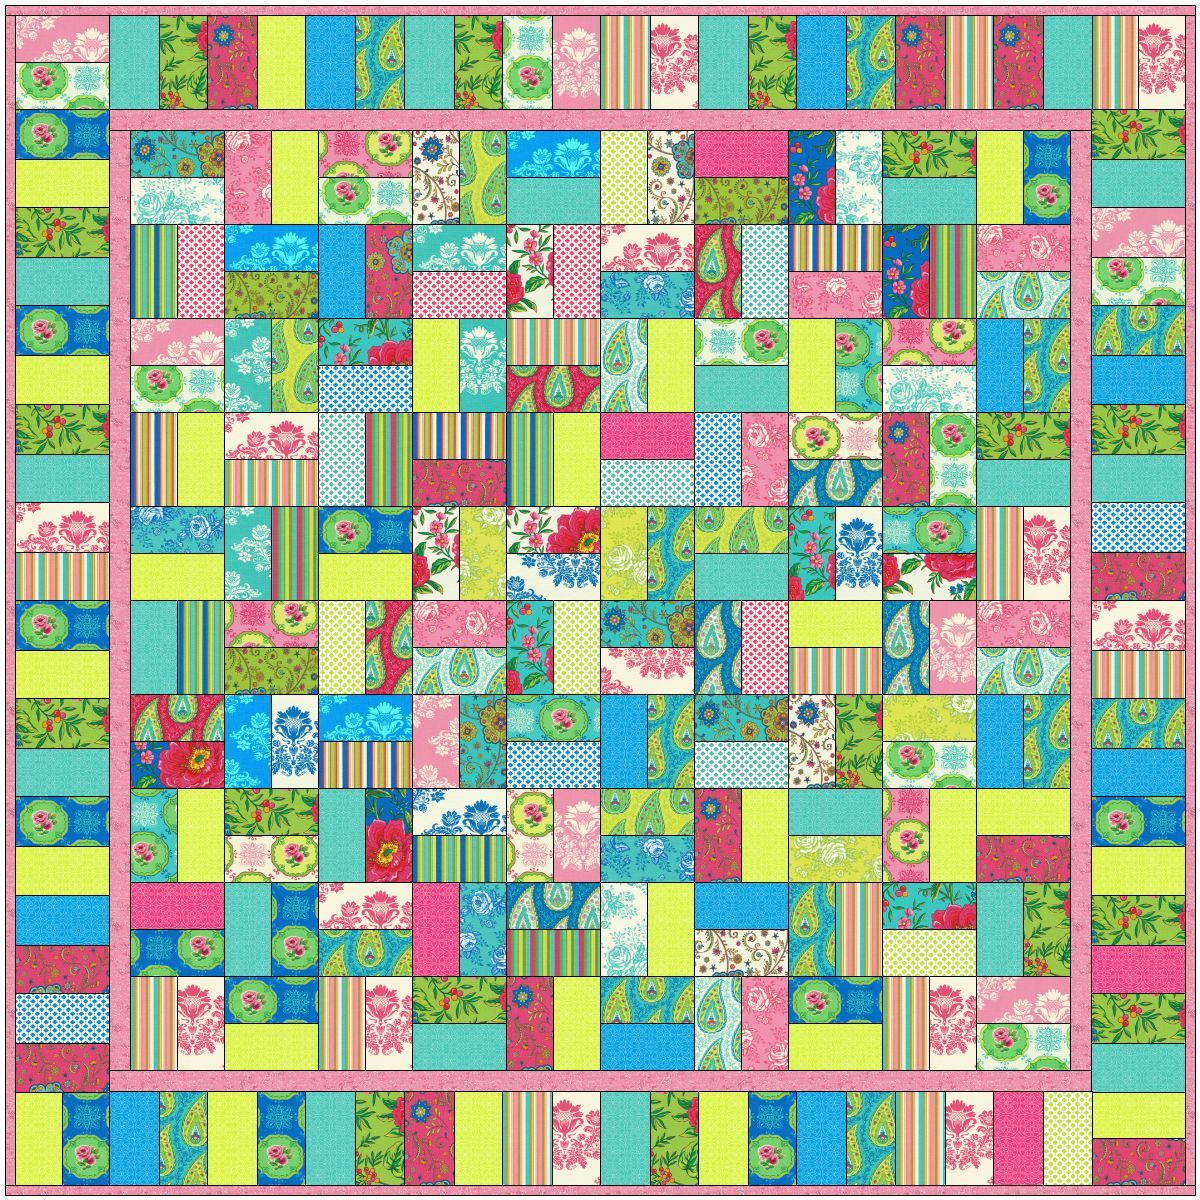 Christas quilt along 11 the jolly jelly roll quilt supply list christas quilt along 11 the jolly jelly roll quilt supply list baditri Images